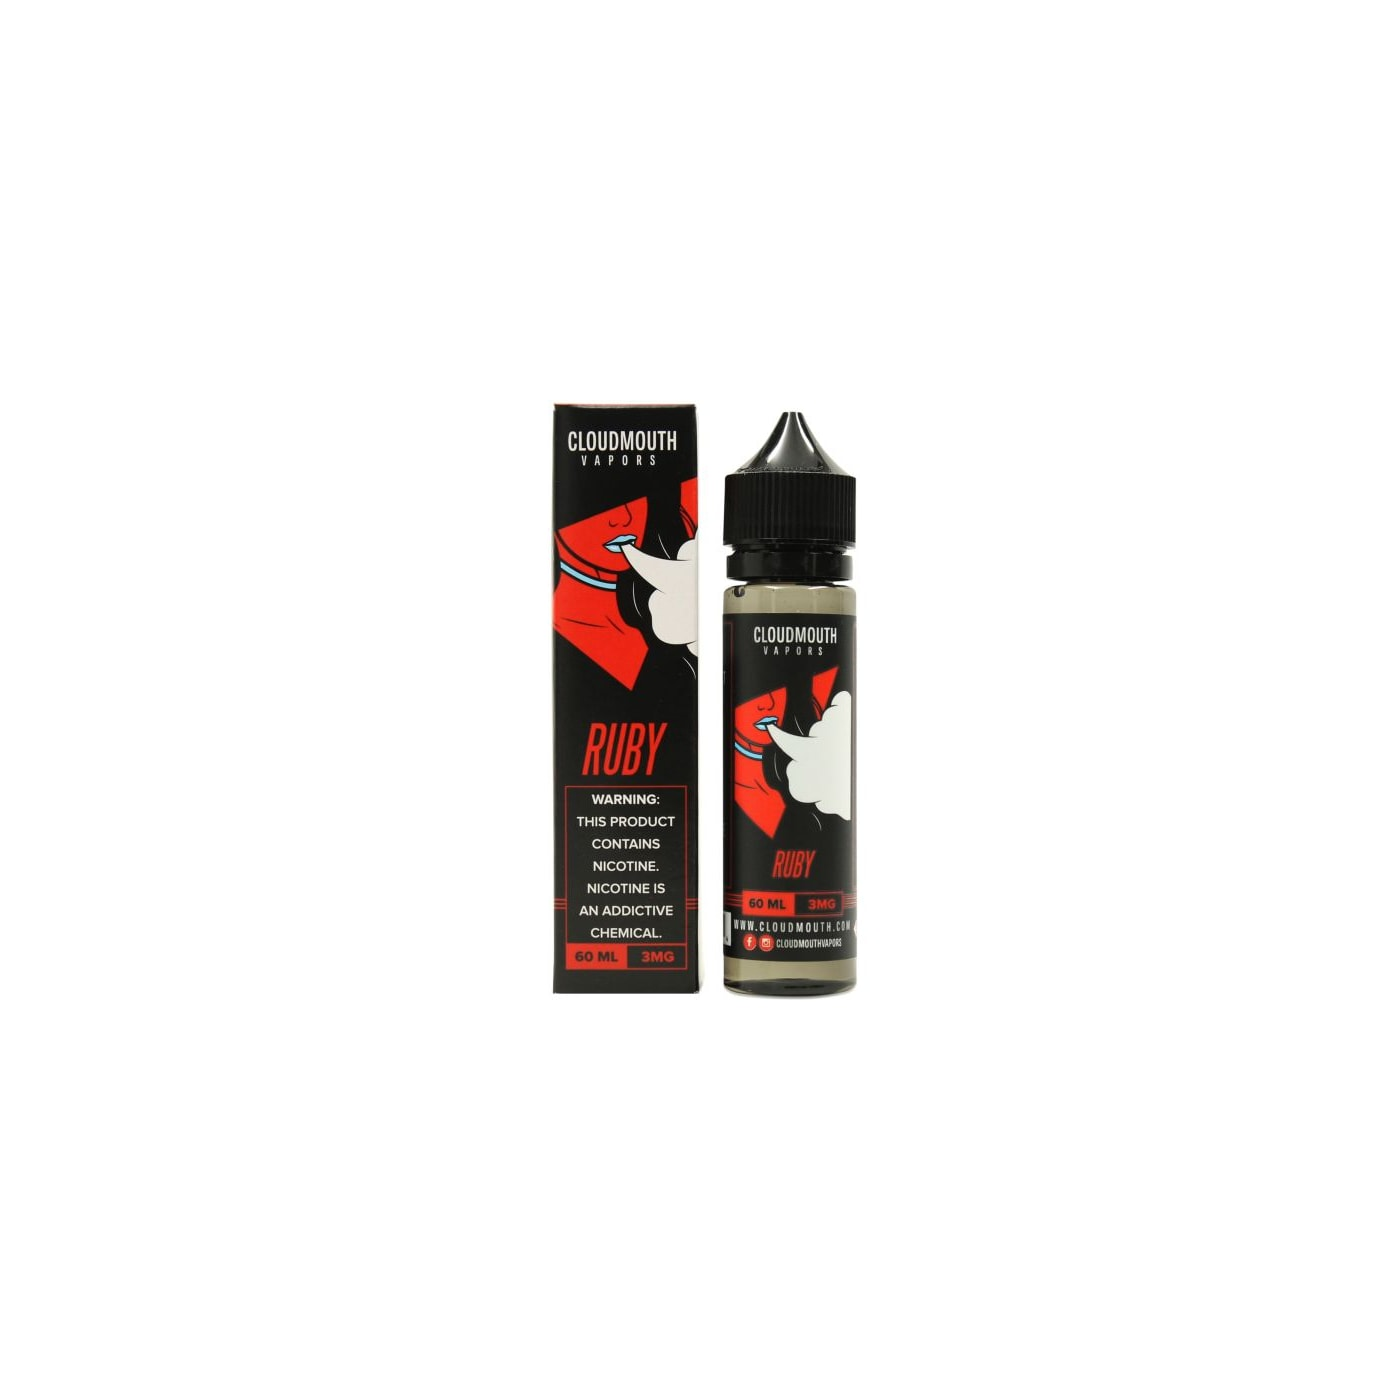 Cloudmouth Vapors Ruby